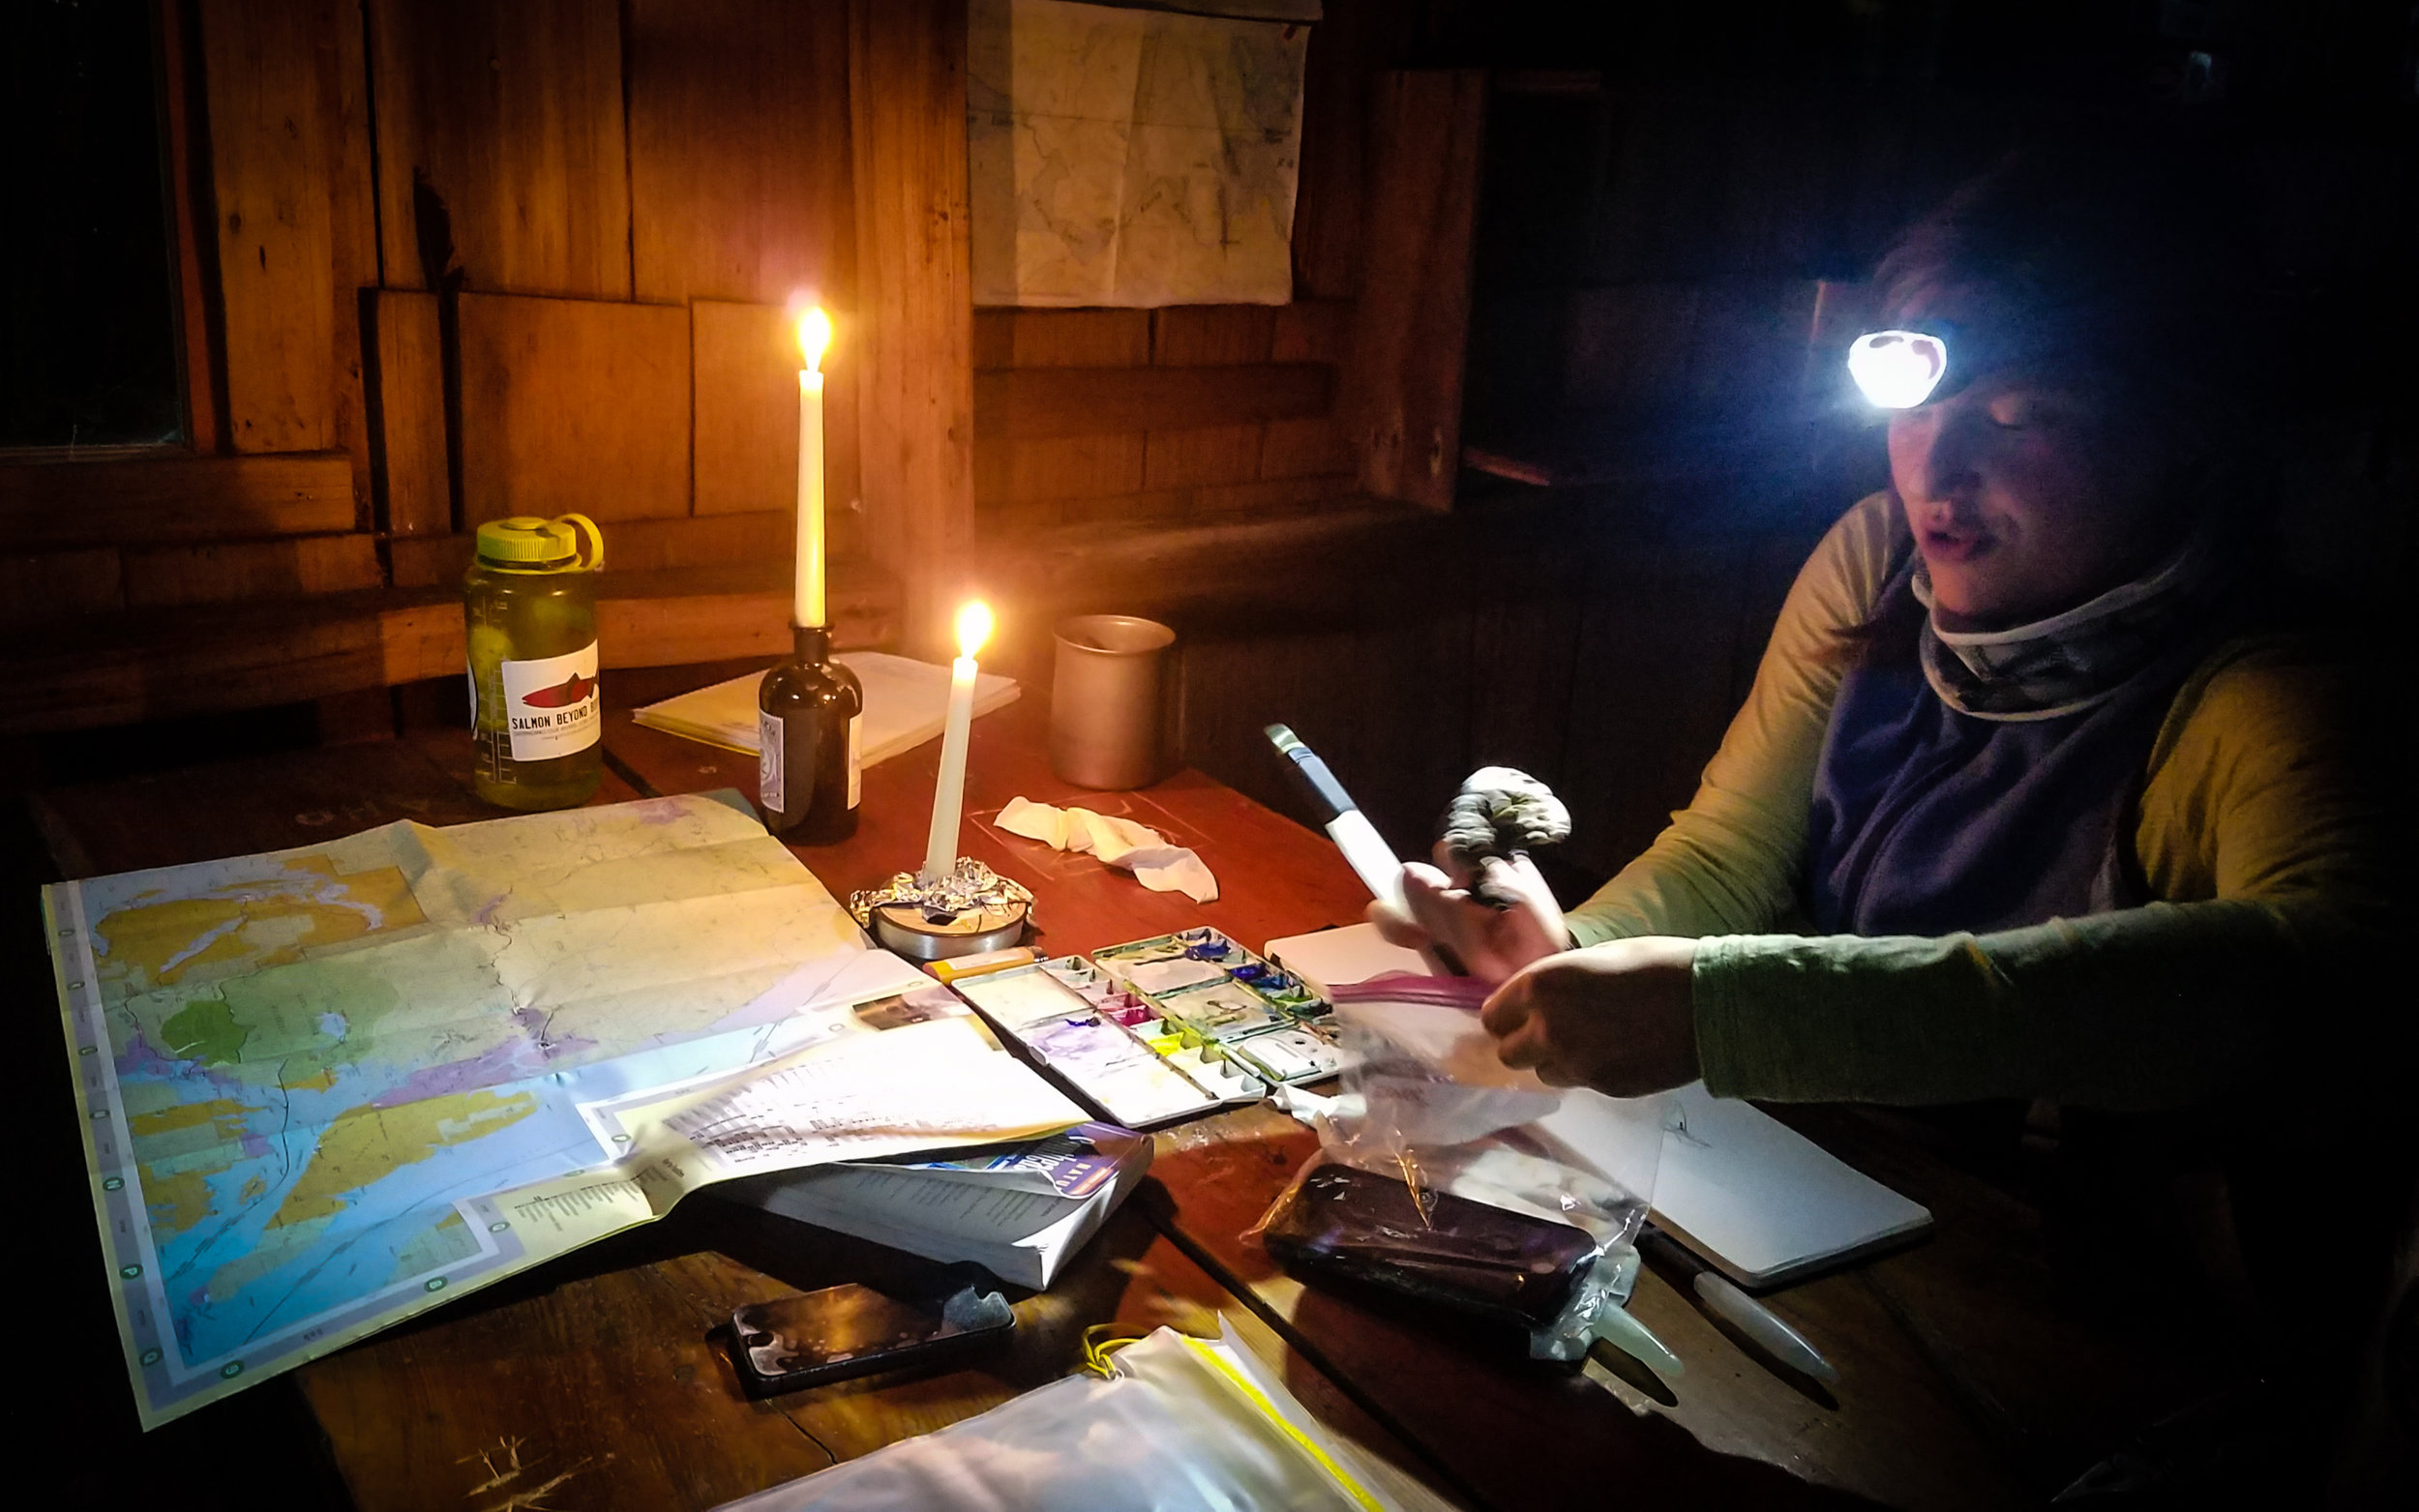 Mara illustrating by candle and headlamp